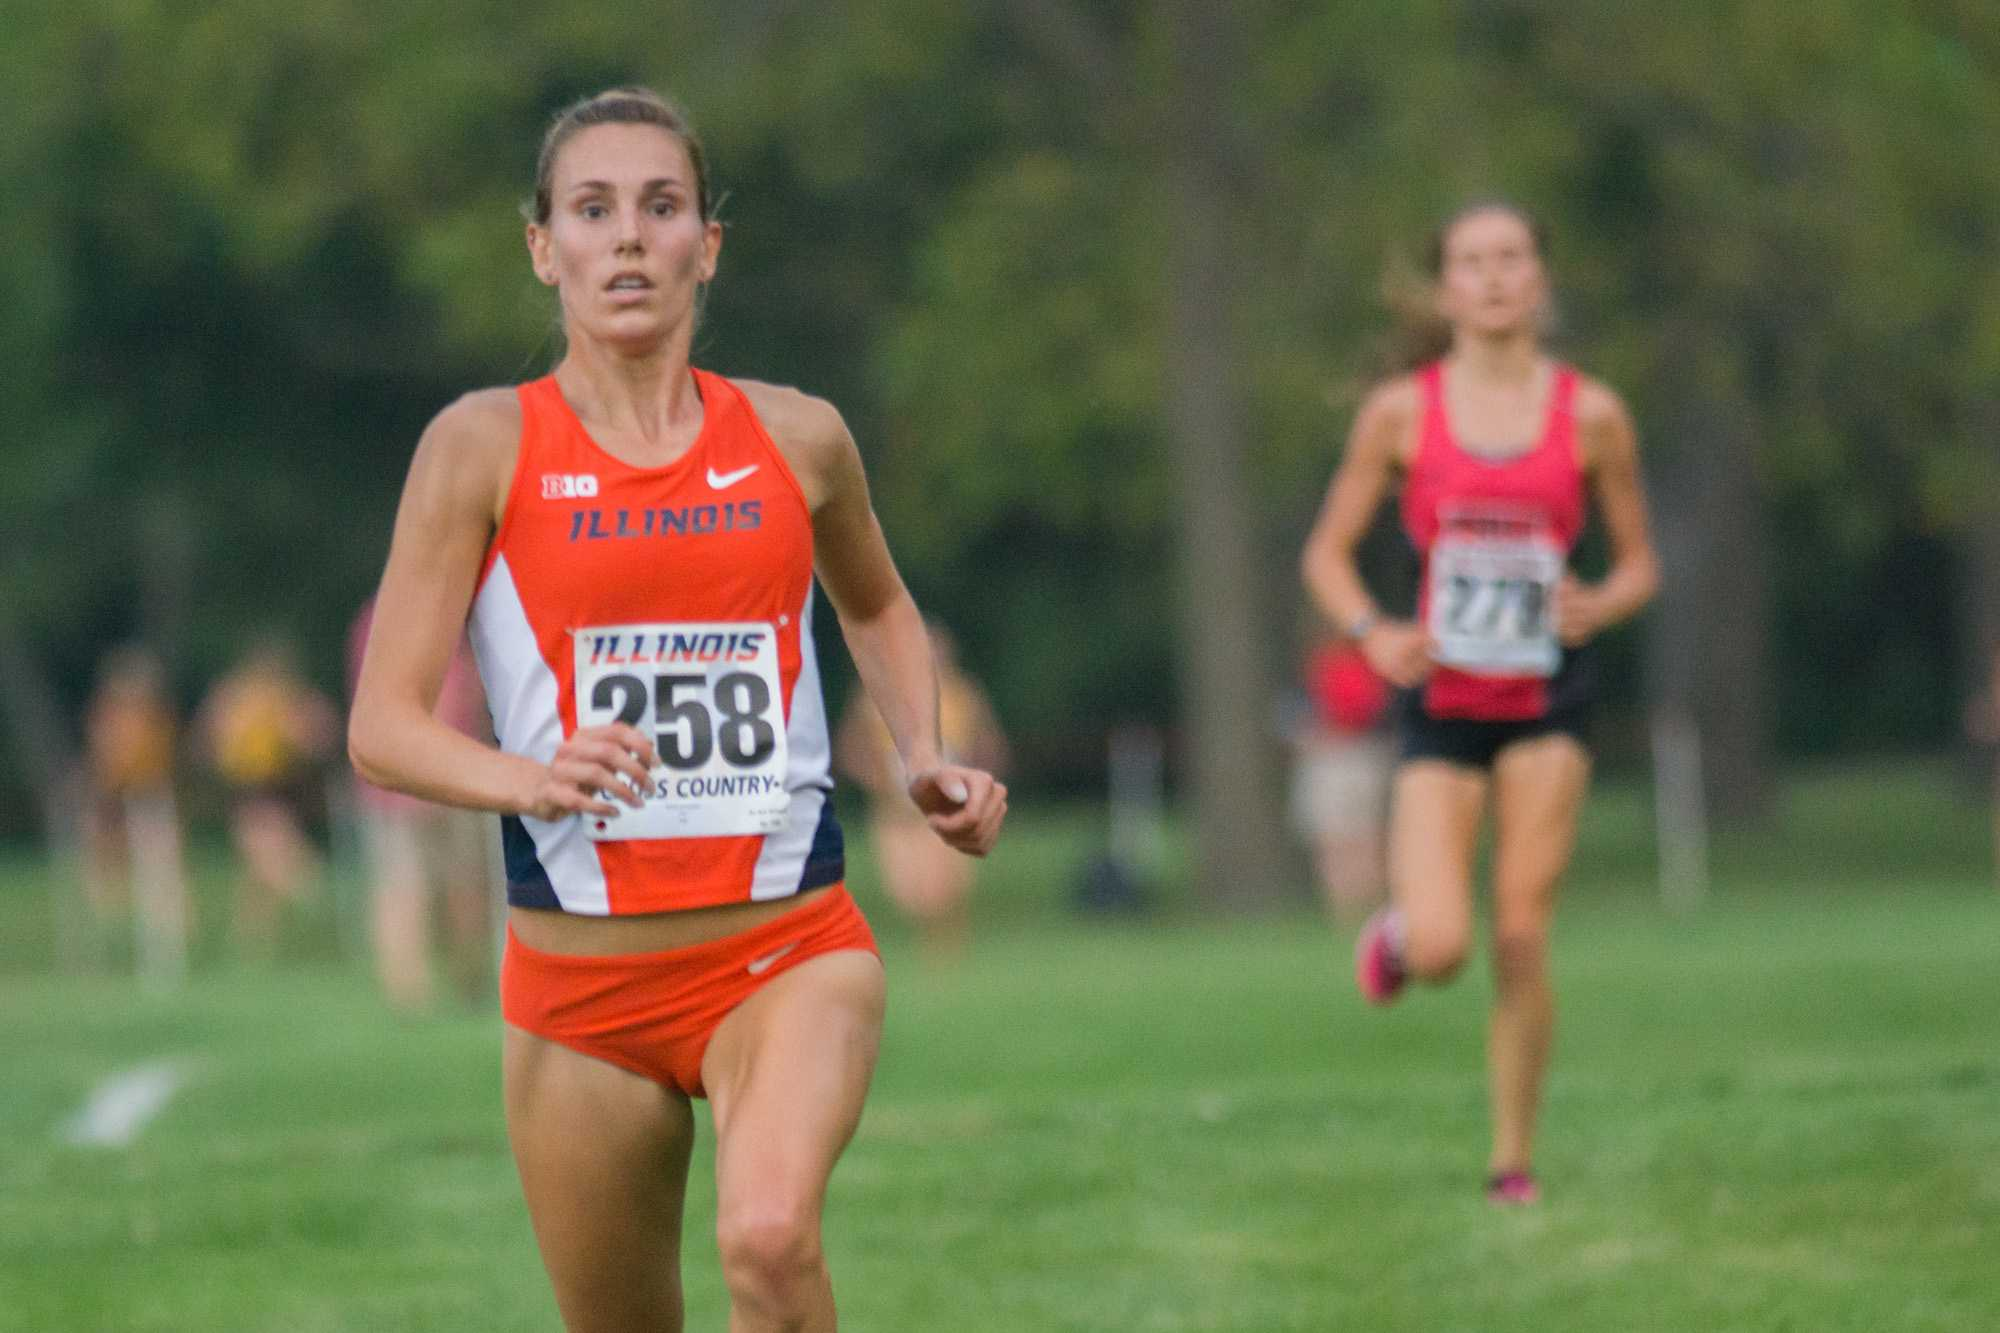 Alyssa Schneider(258) staying ahead of the competition at the Illini Challenge 2015 at the Arboretum on September 4.